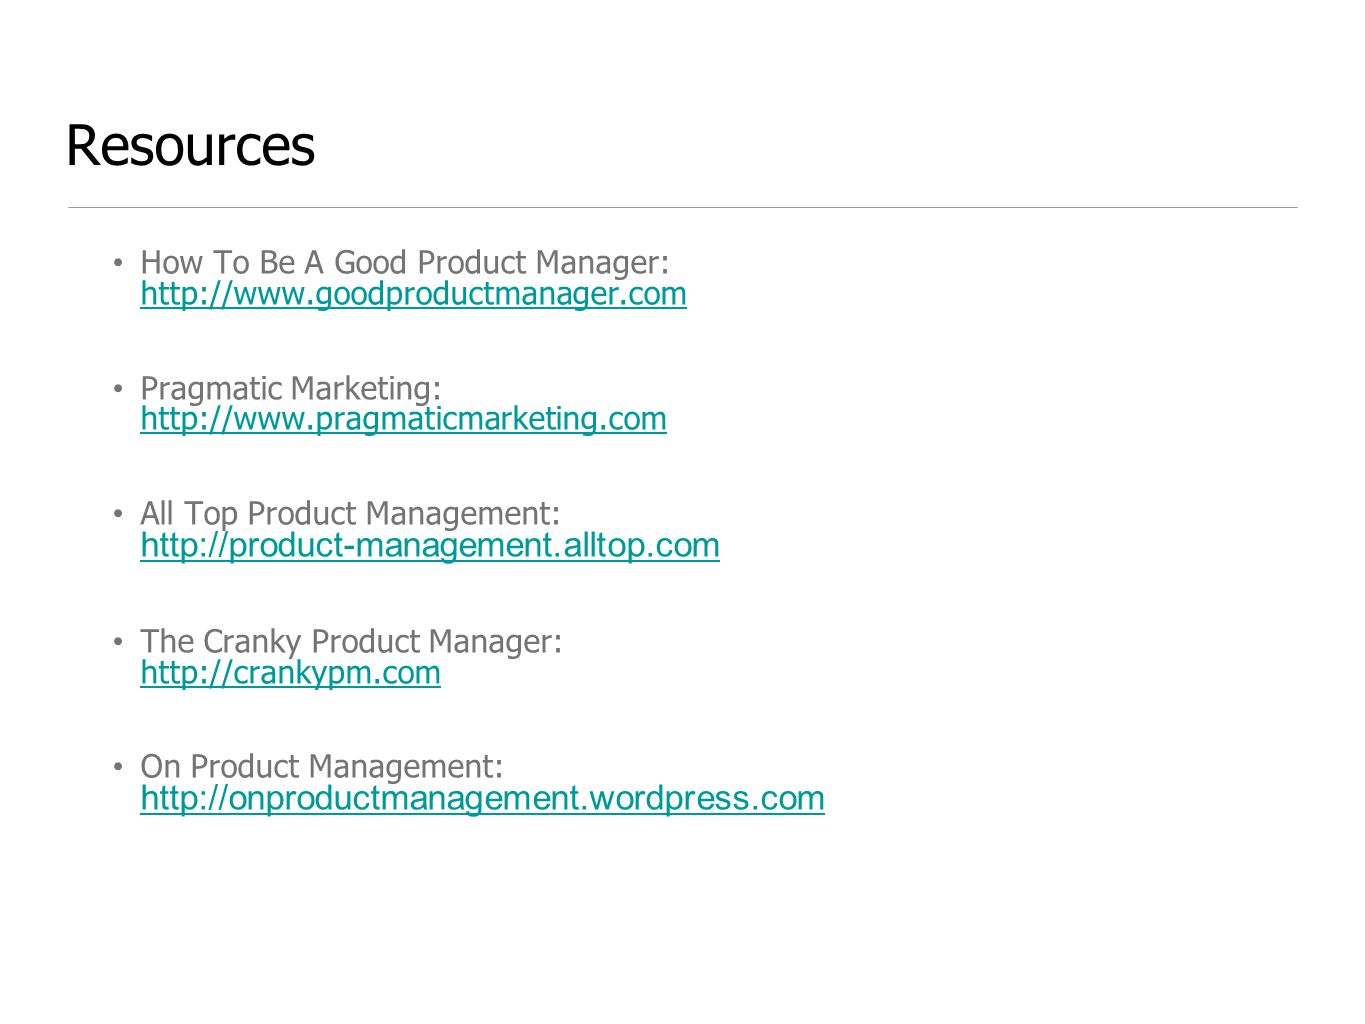 Resources How To Be A Good Product Manager: http://www.goodproductmanager.com http://www.goodproductmanager.com Pragmatic Marketing: http://www.pragmaticmarketing.com http://www.pragmaticmarketing.com All Top Product Management: http://product-management.alltop.com http://product-management.alltop.com The Cranky Product Manager: http://crankypm.com http://crankypm.com On Product Management: http://onproductmanagement.wordpress.com http://onproductmanagement.wordpress.com